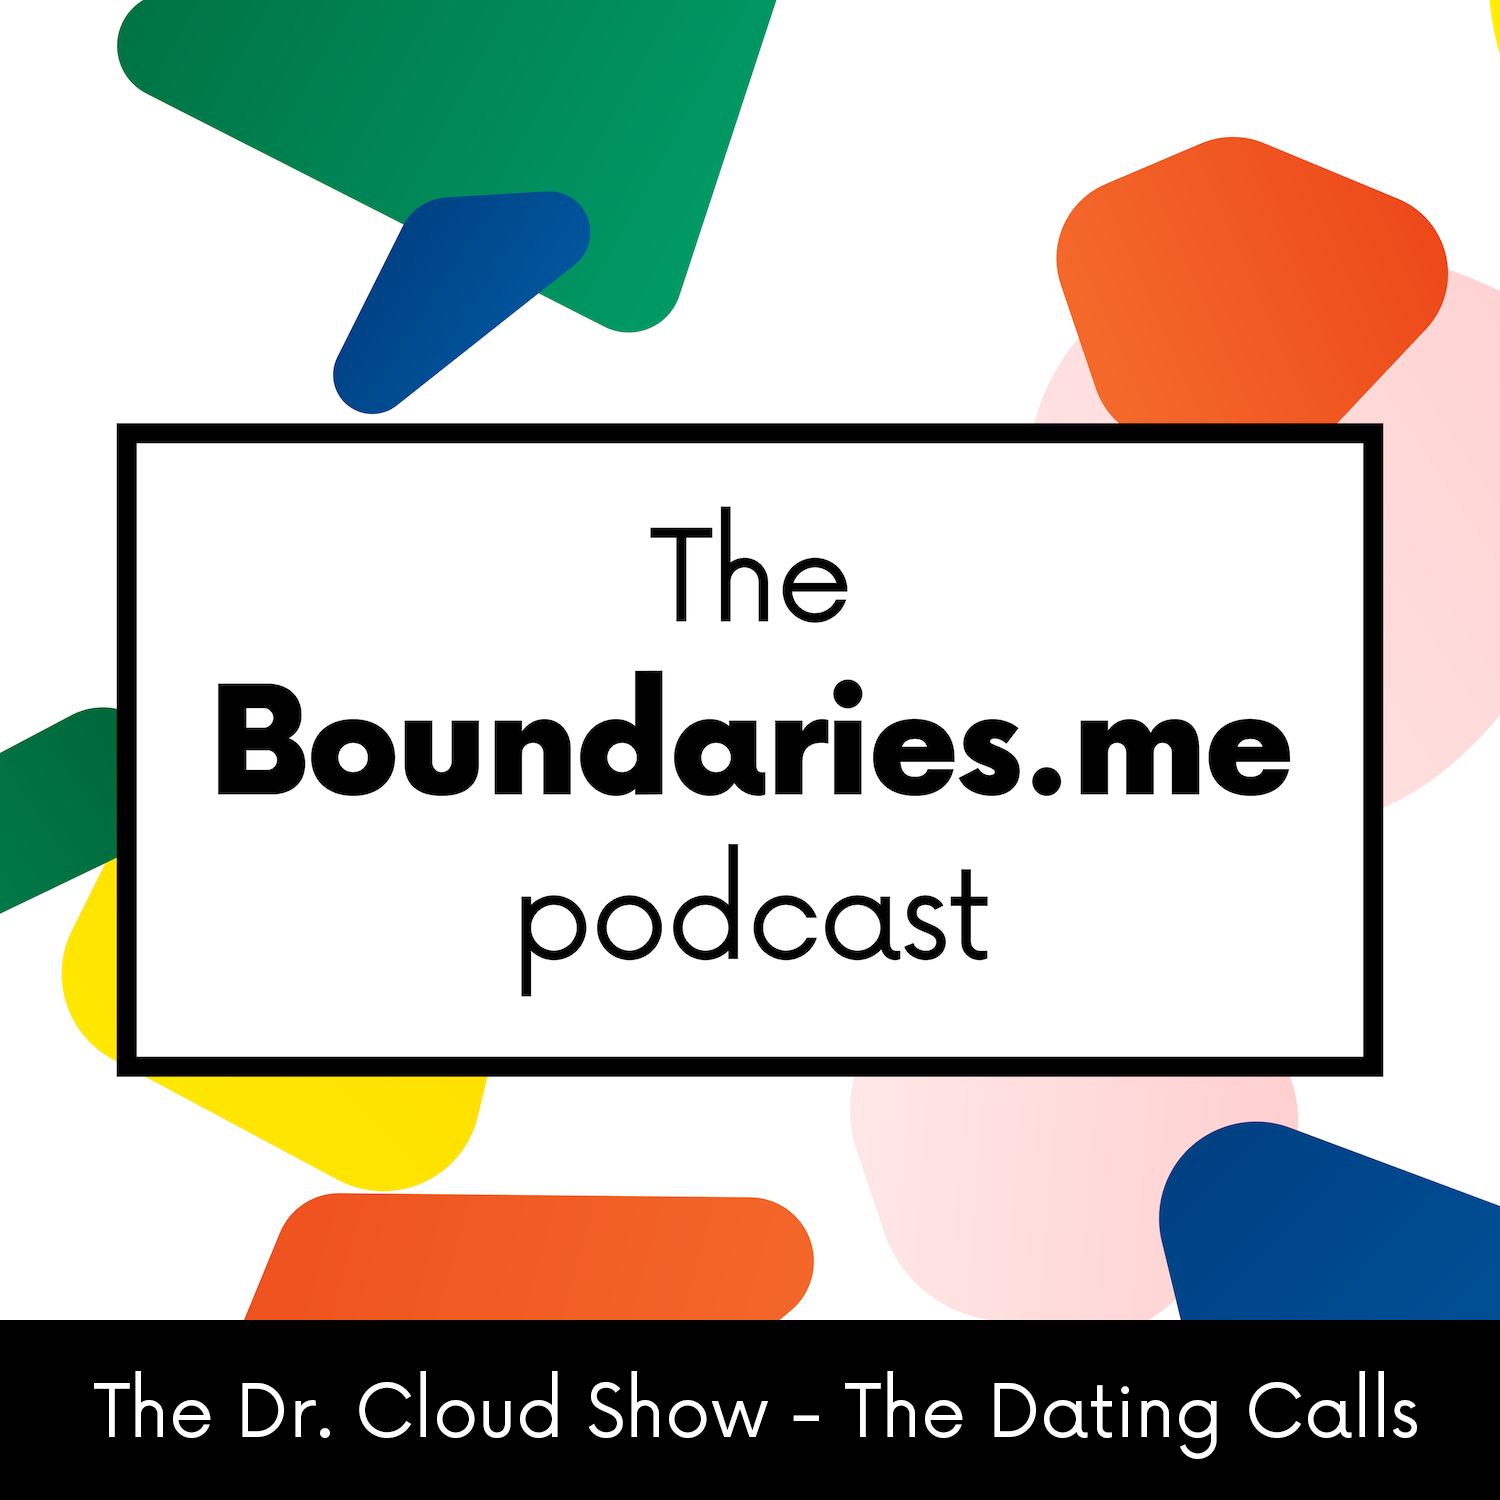 Episode 144 - The Dr. Cloud Show - Best of the Dating Calls - Collection No. 2